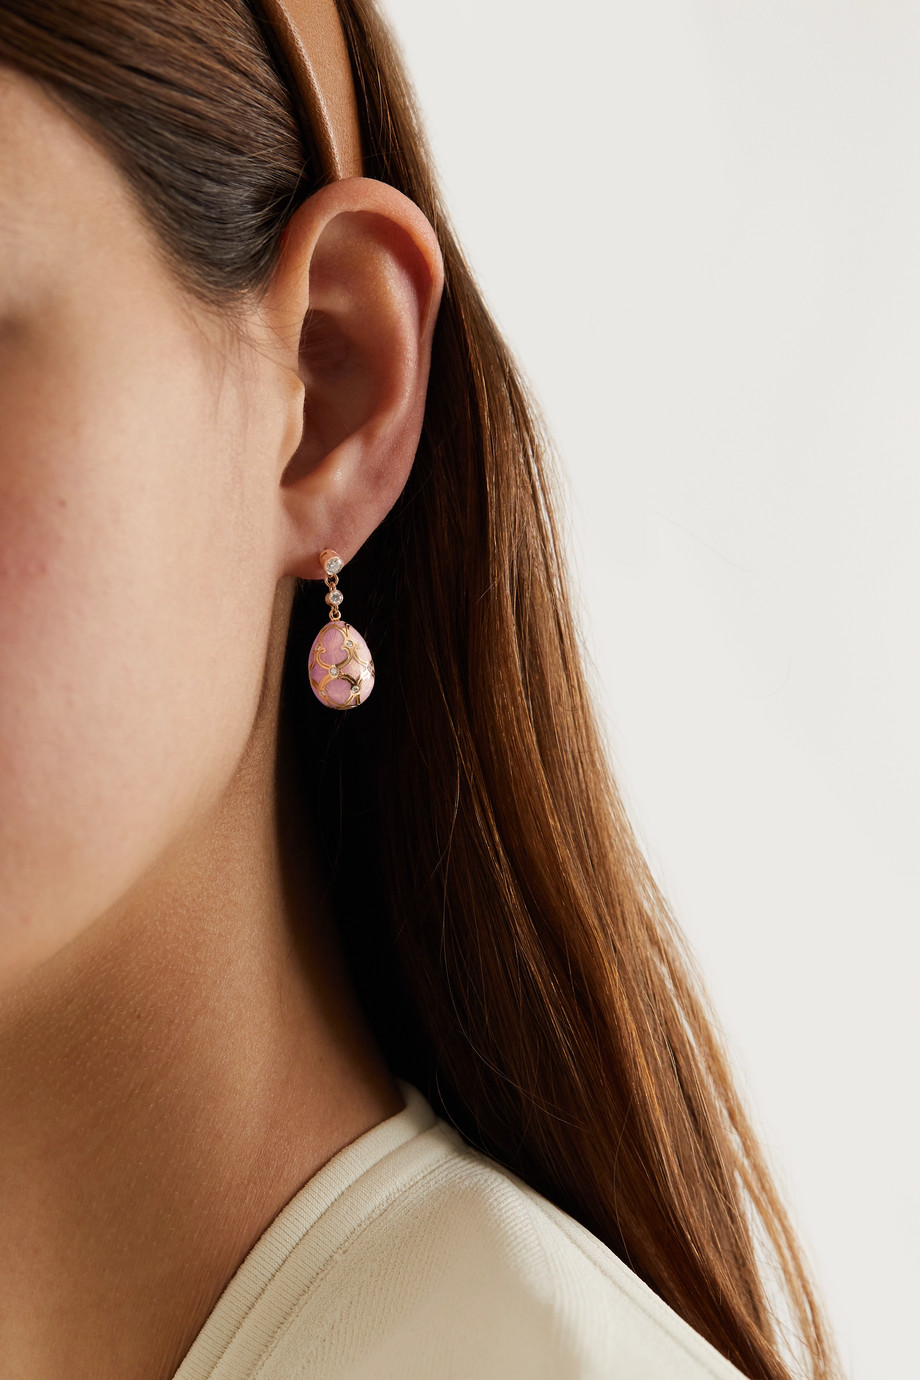 FABERGÉ Heritage 18-karat rose gold, enamel and diamond earrings